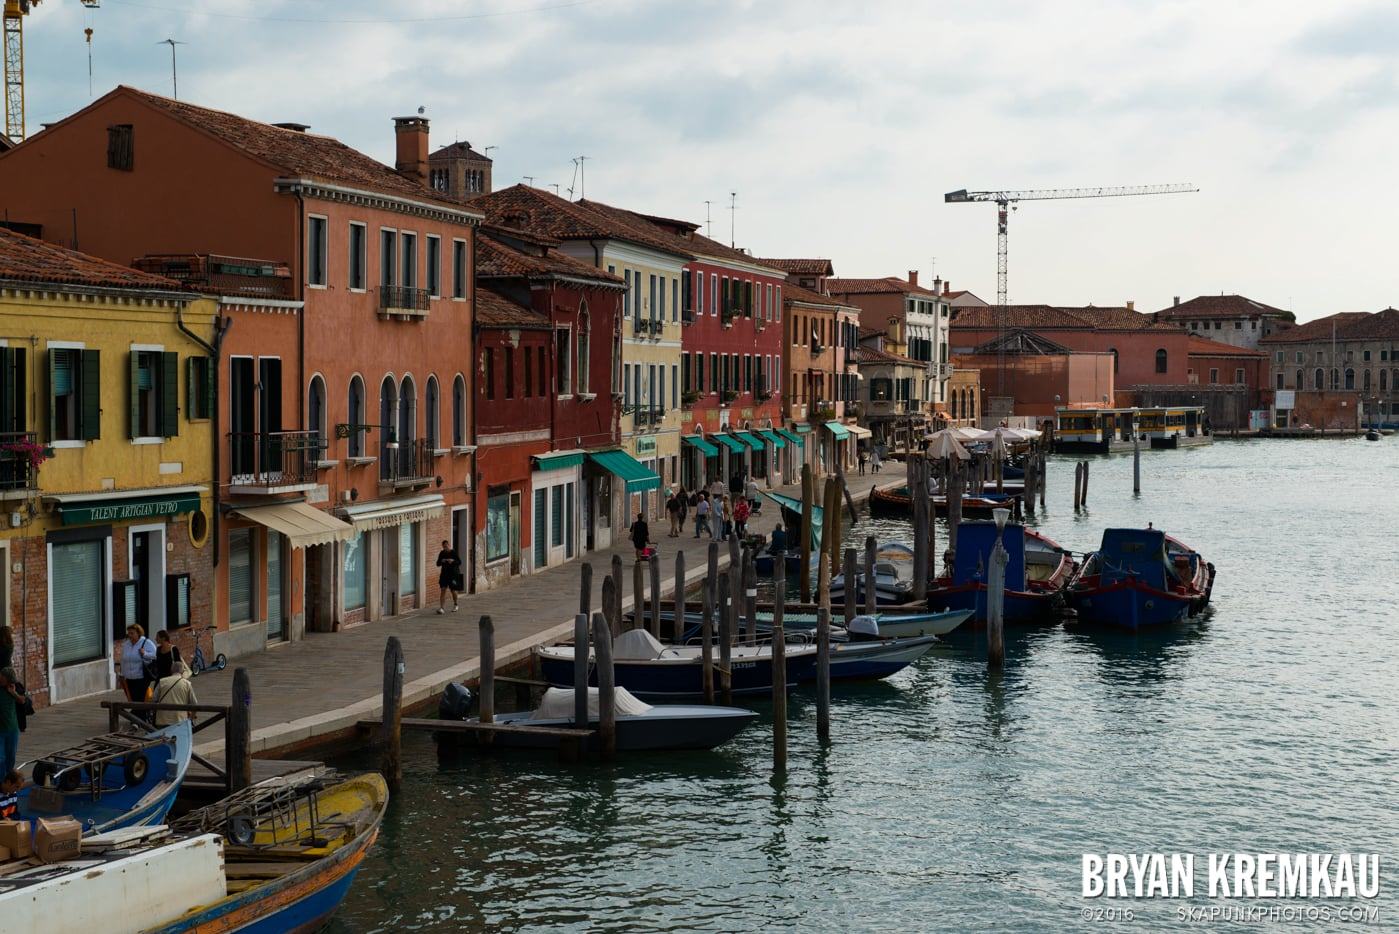 Italy Vacation - Day 6: Murano, Burano, Venice - 9.14.13 (92)